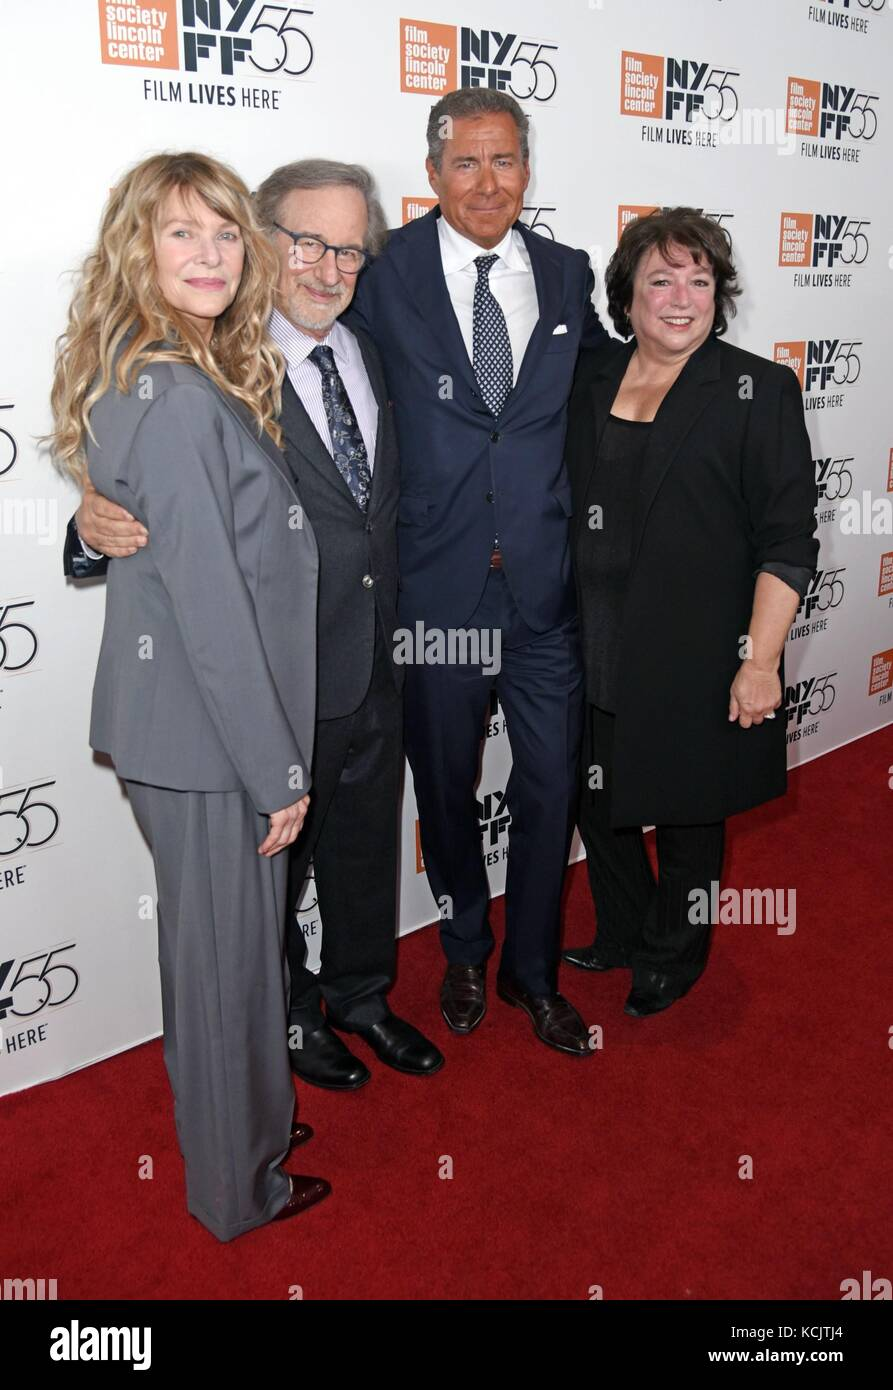 New York, NY, USA. 5th Oct, 2017. Kate Capshaw, Steven Spielberg, Richard Plepler, Susan Lacy at arrivals for SPIELBERG - Stock Image